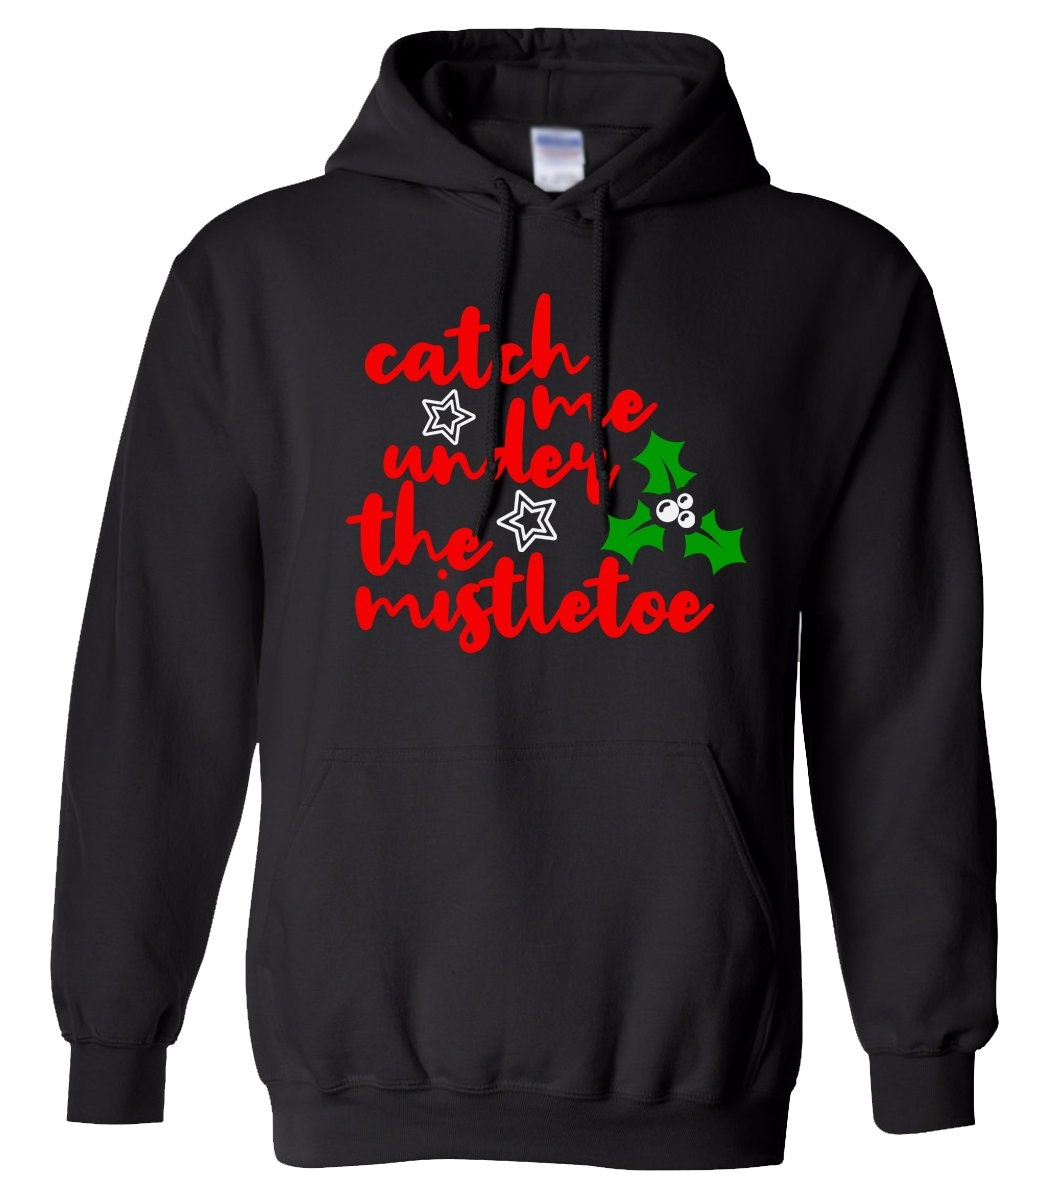 black under the mistletoe unisex Christmas hooded sweatshirt